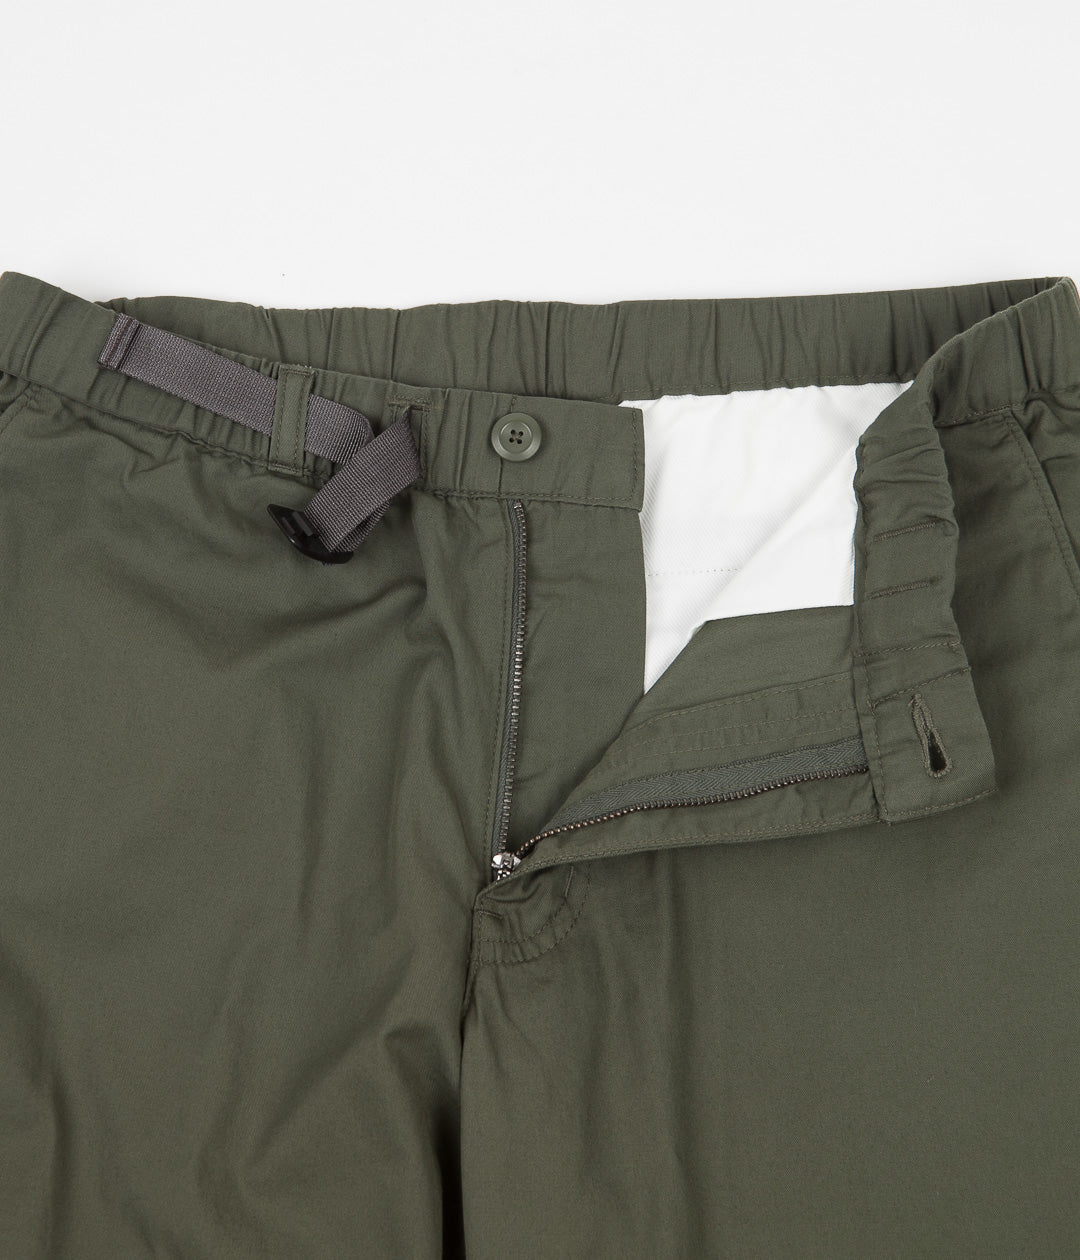 Patagonia Organic Cotton Lightweight Gi Pants - Industrial Green